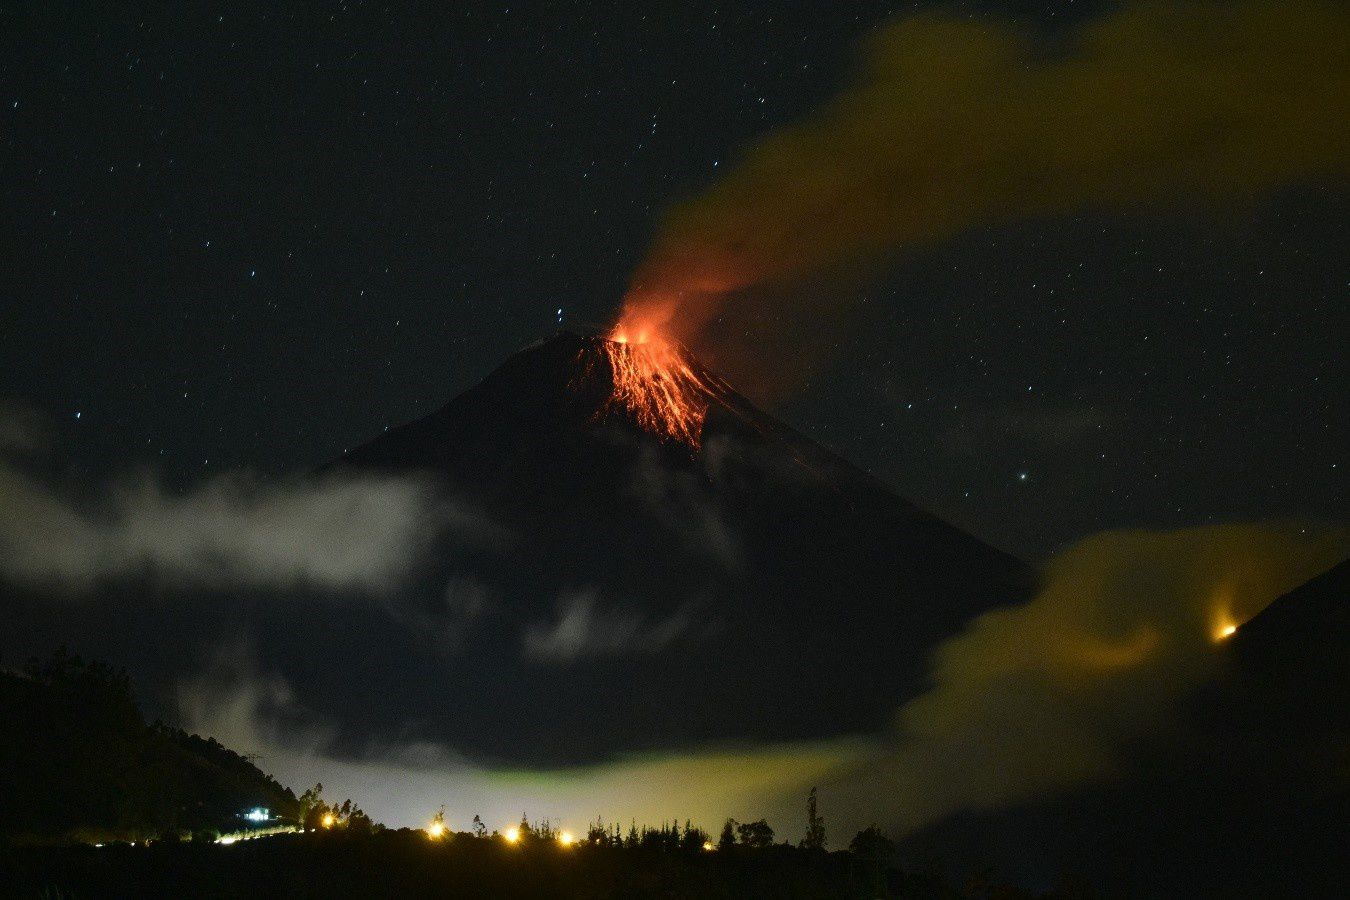 Tungurahua - strombolian activity 10.11.2015 / 7:09 p.m. LT - photo IGEPN